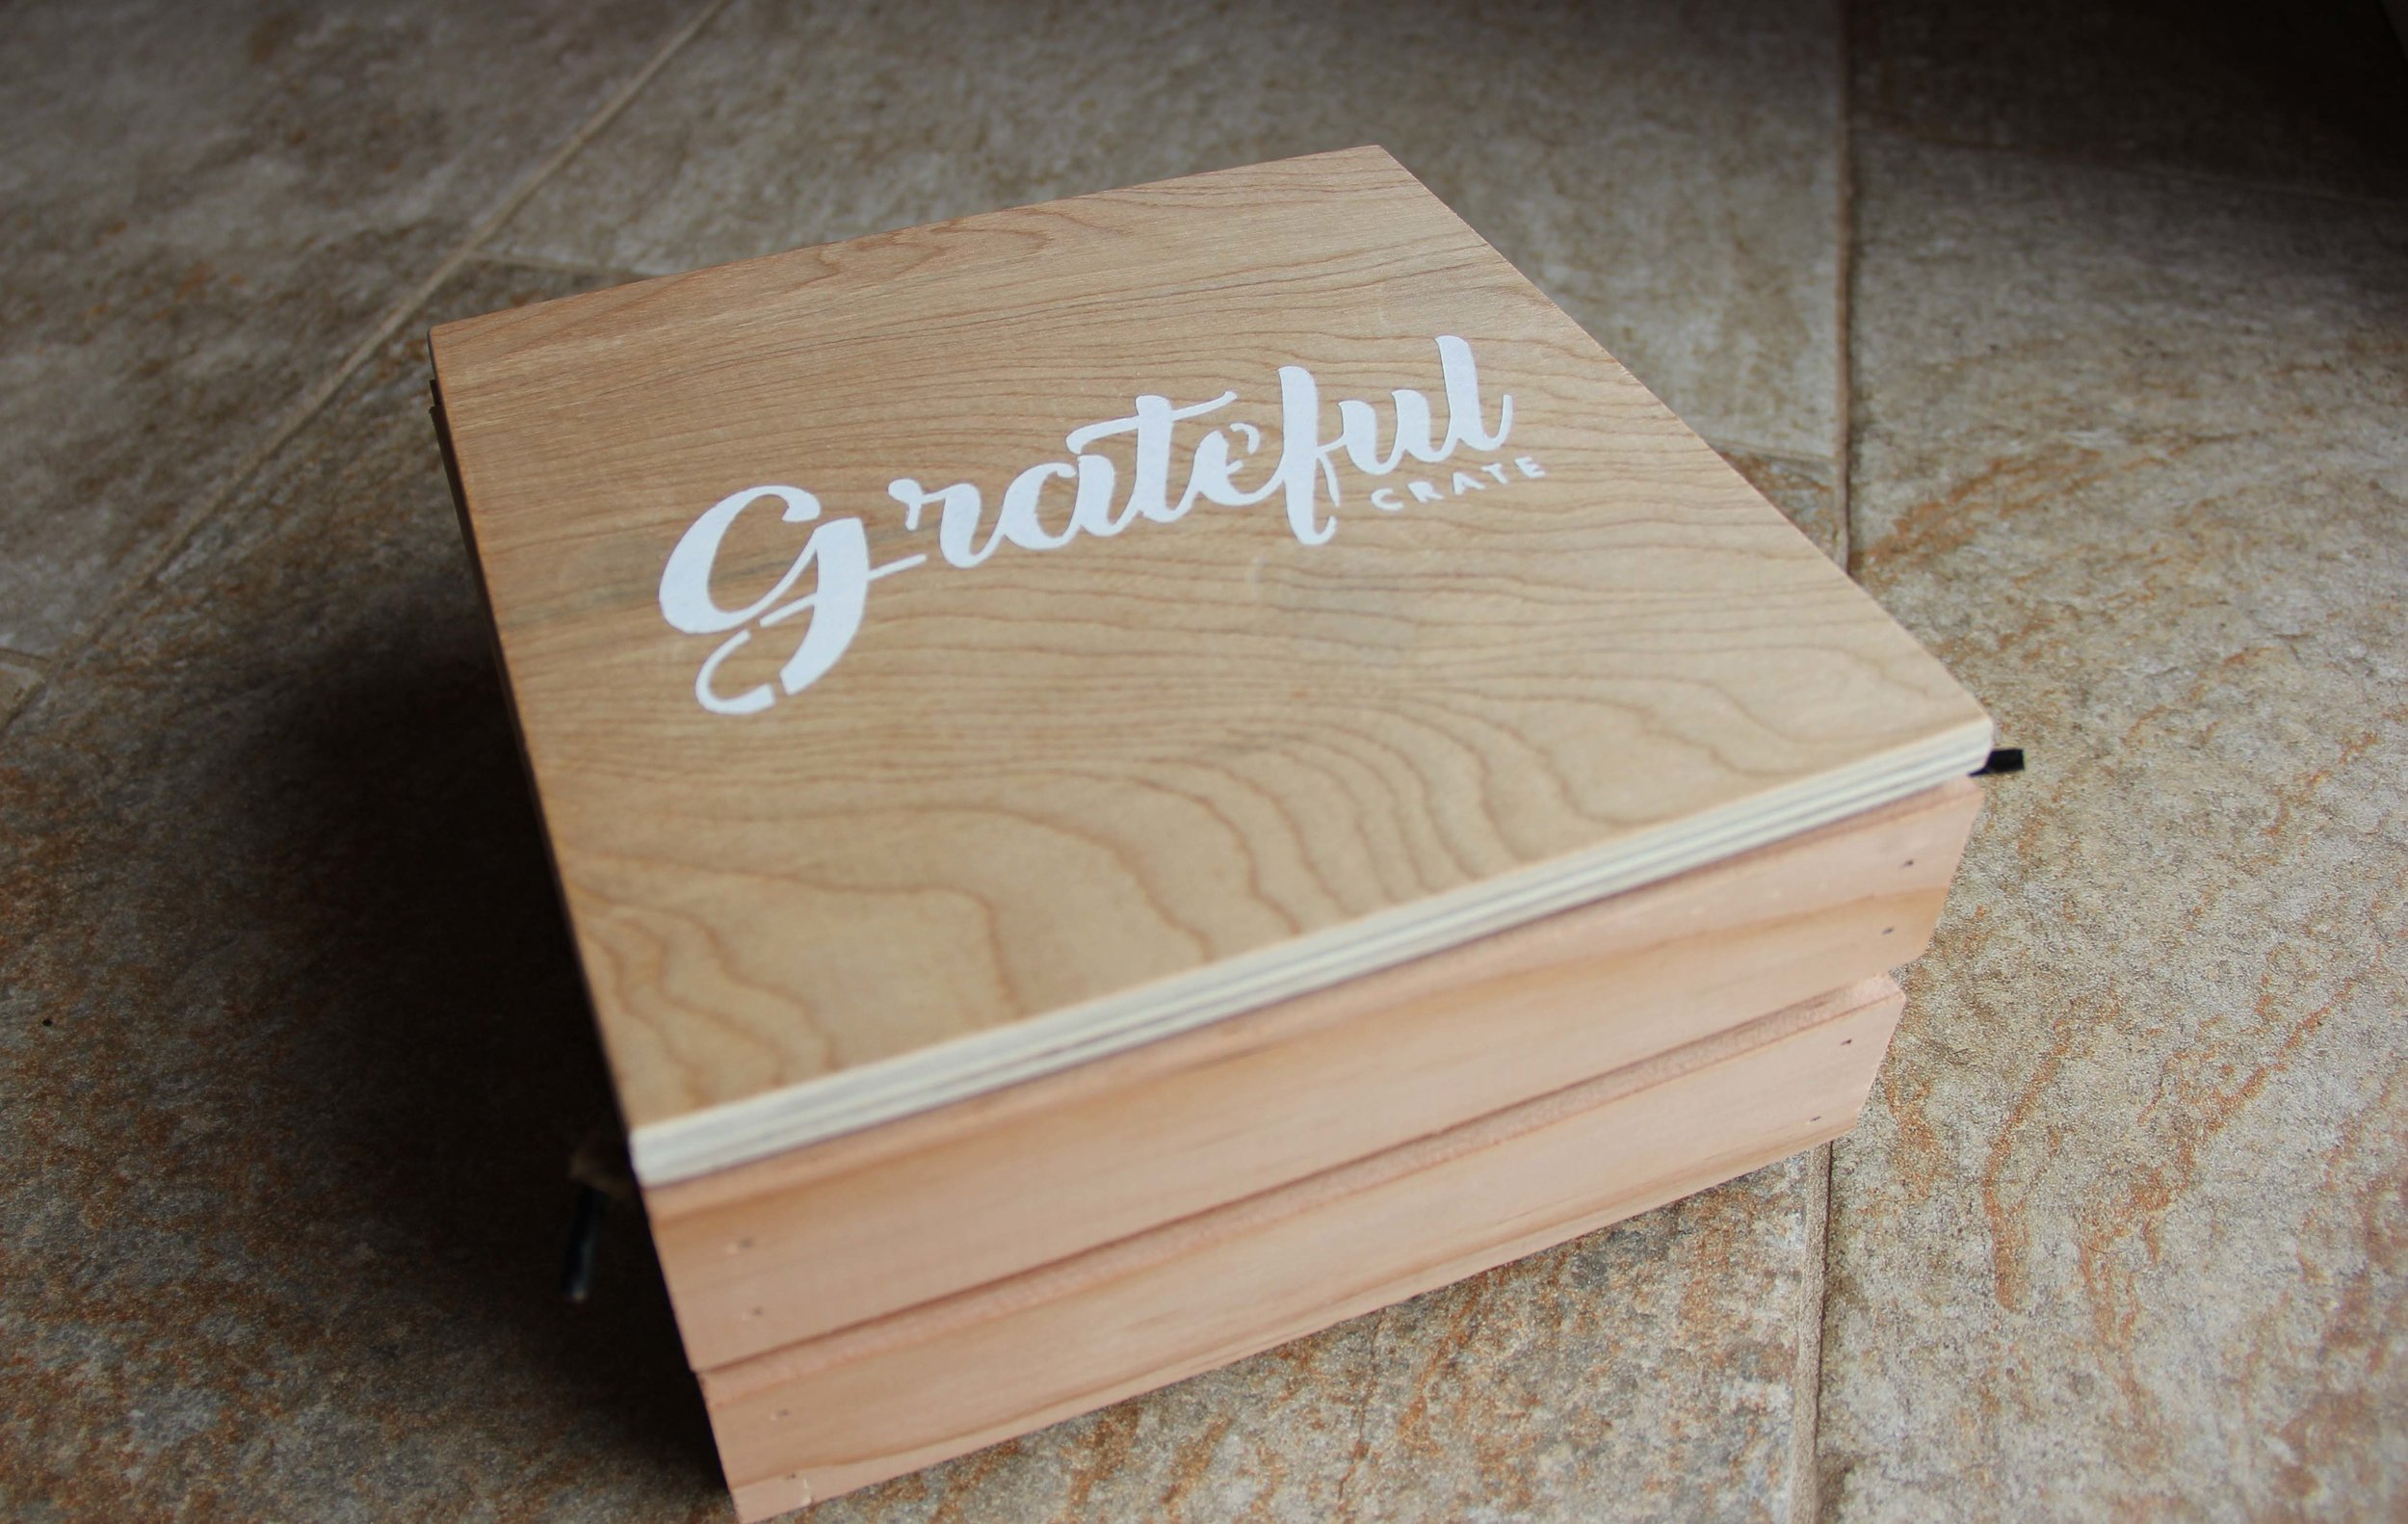 Made By Marissa > Handmade in Hawaii > Home > Small-Grateful Crate > 01.jpg